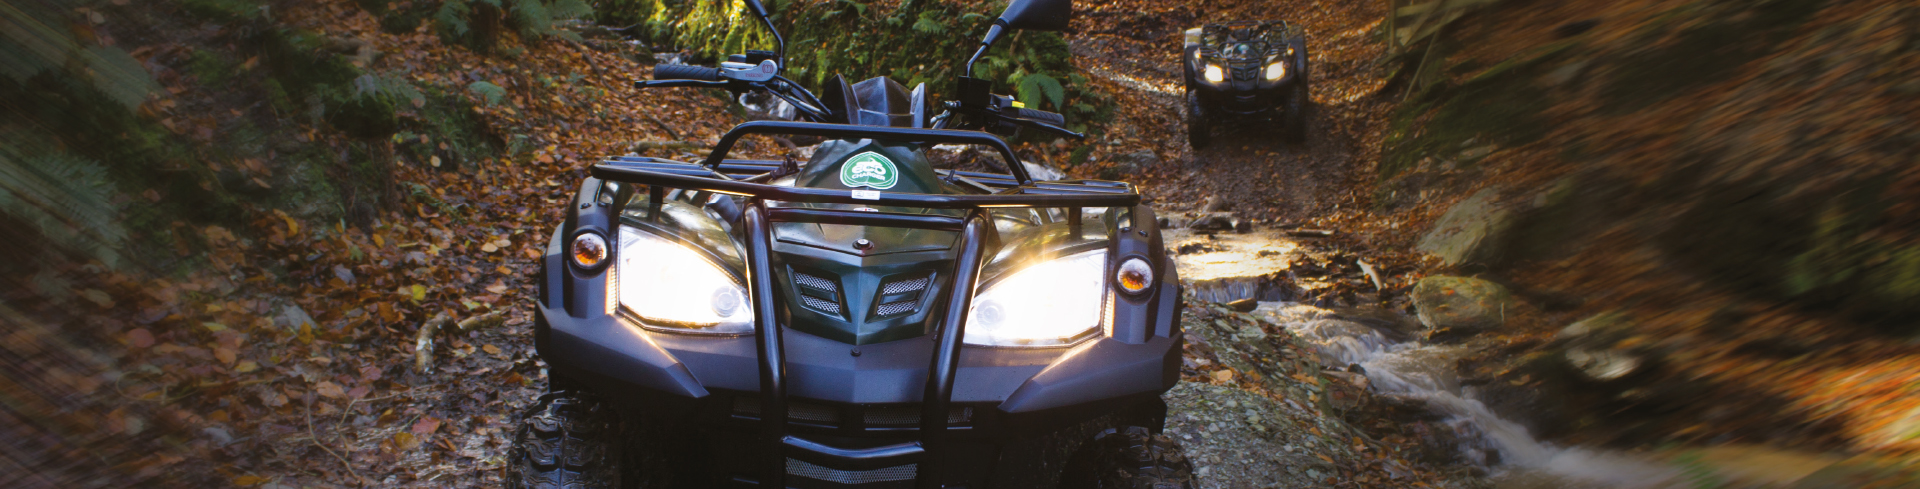 Electric Quad Bike Owners' Club